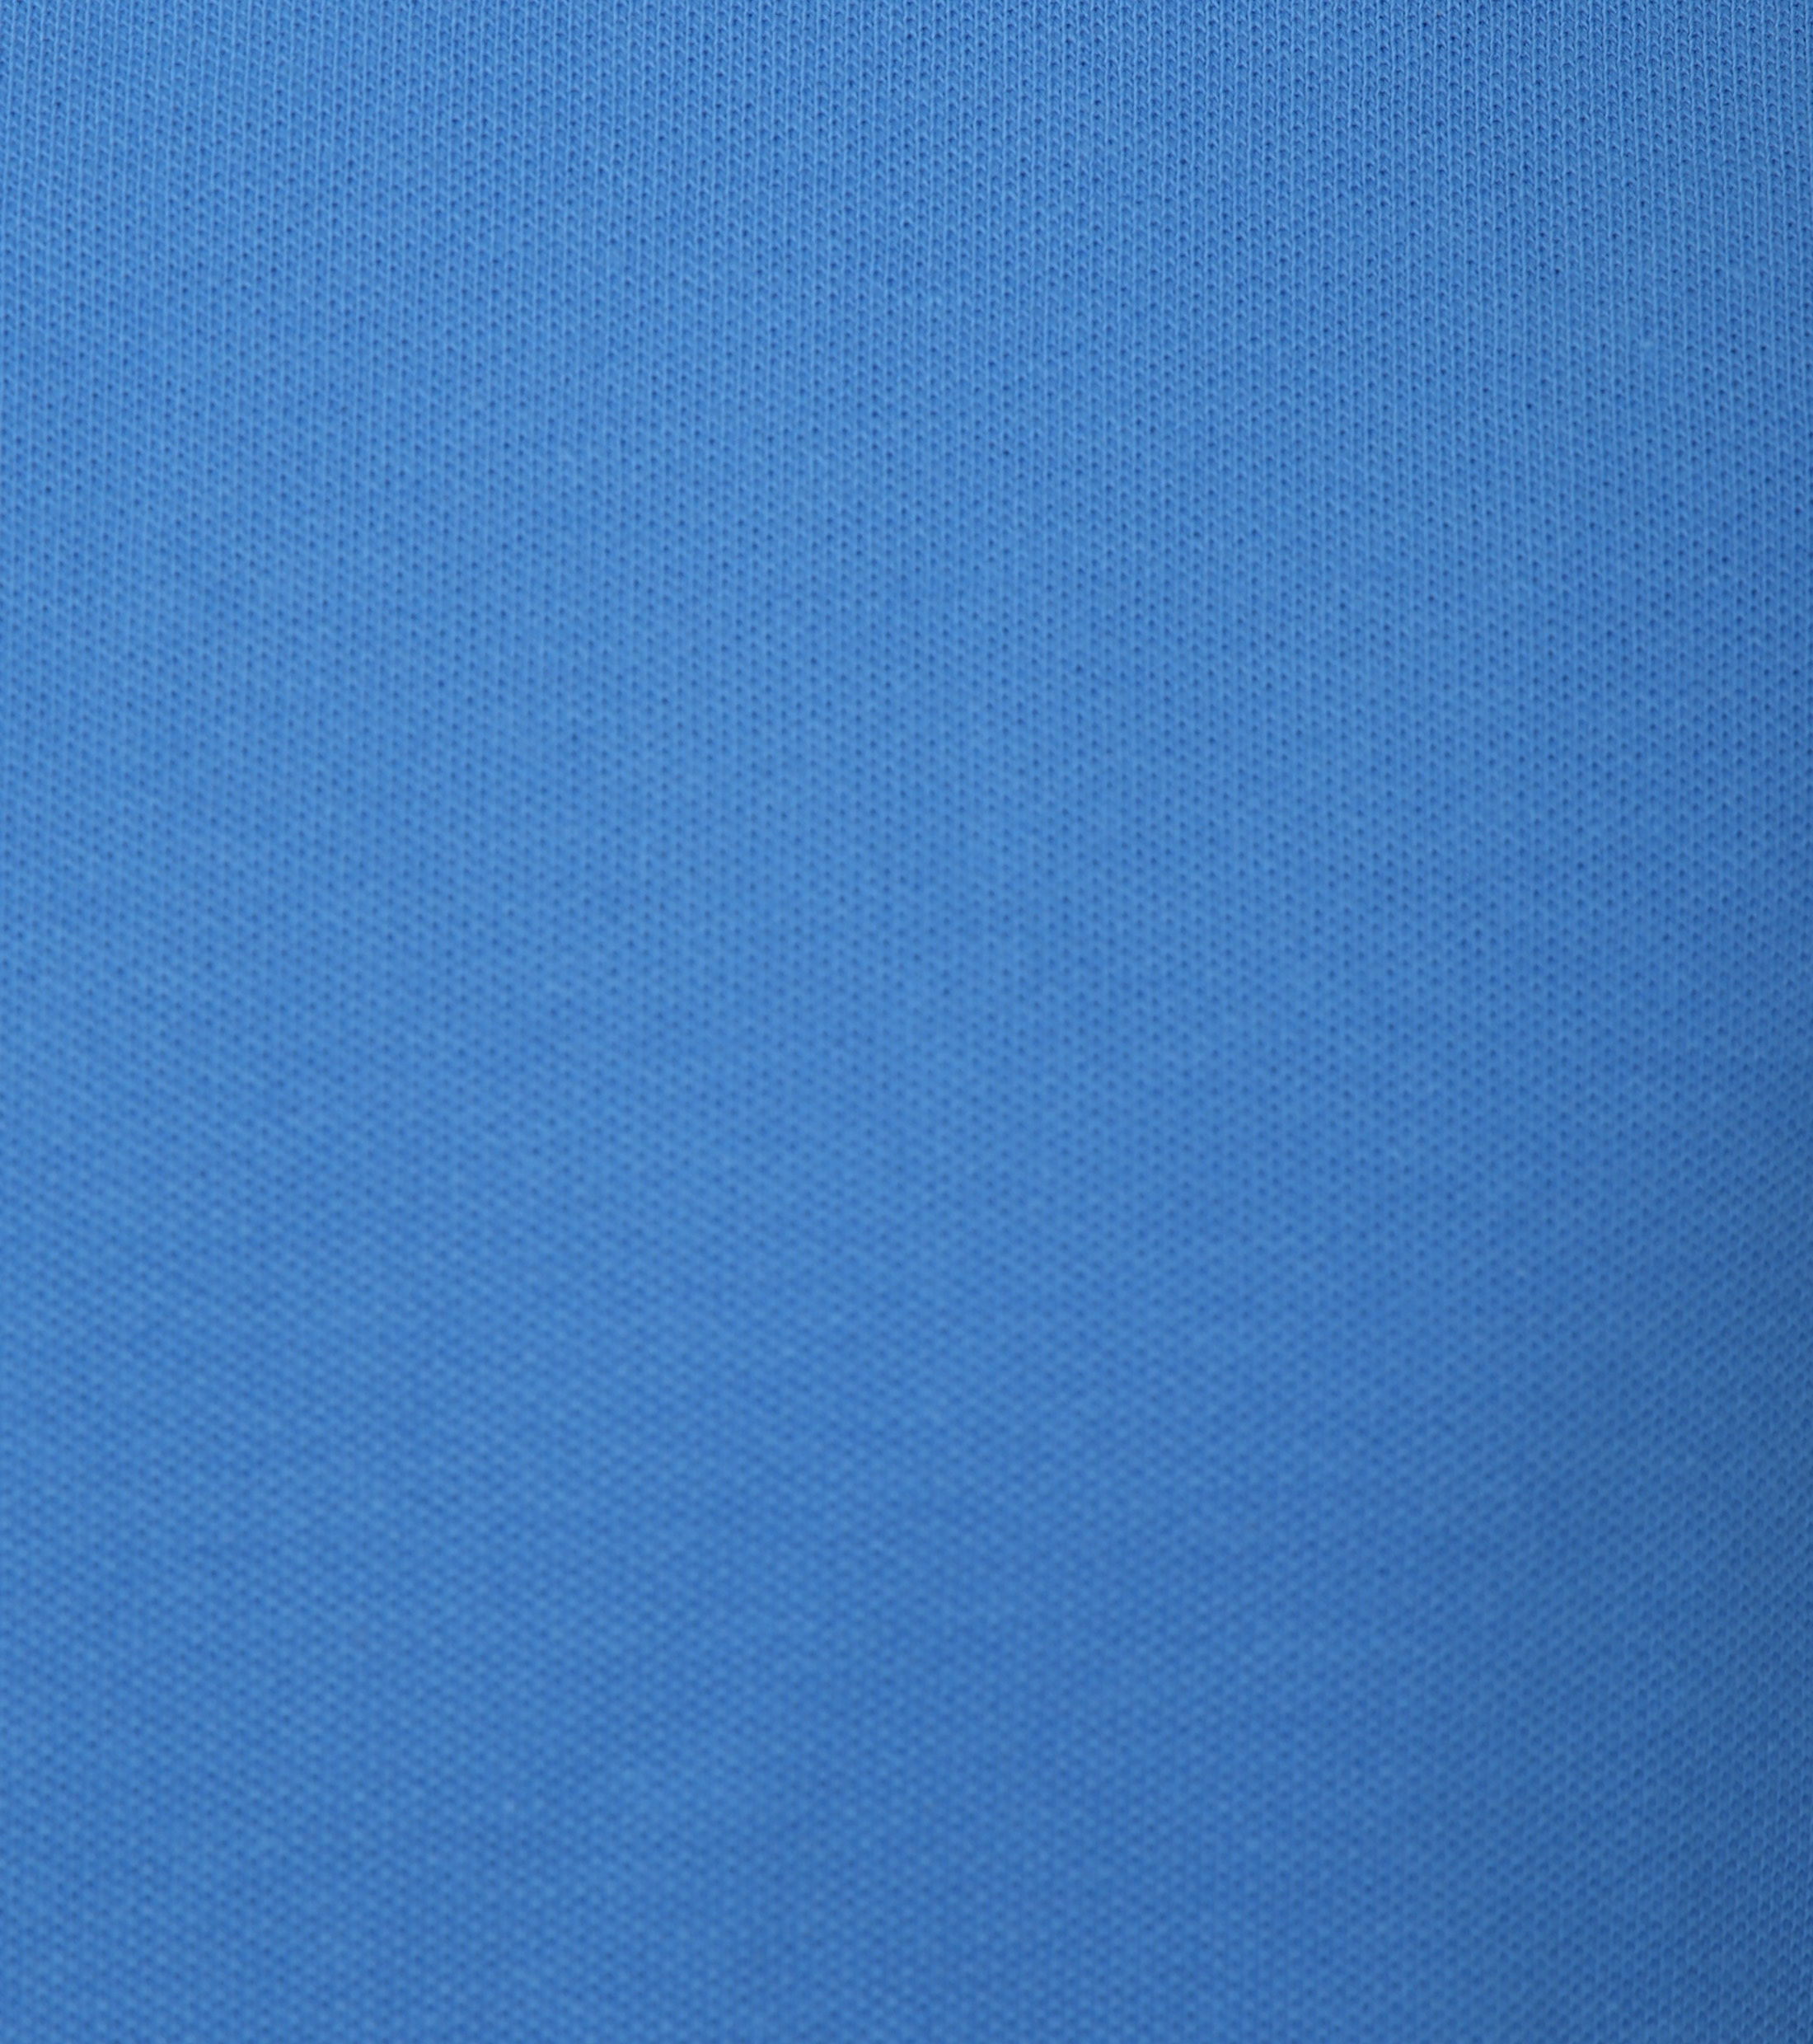 Suitable Poloshirt Basic Blau foto 2